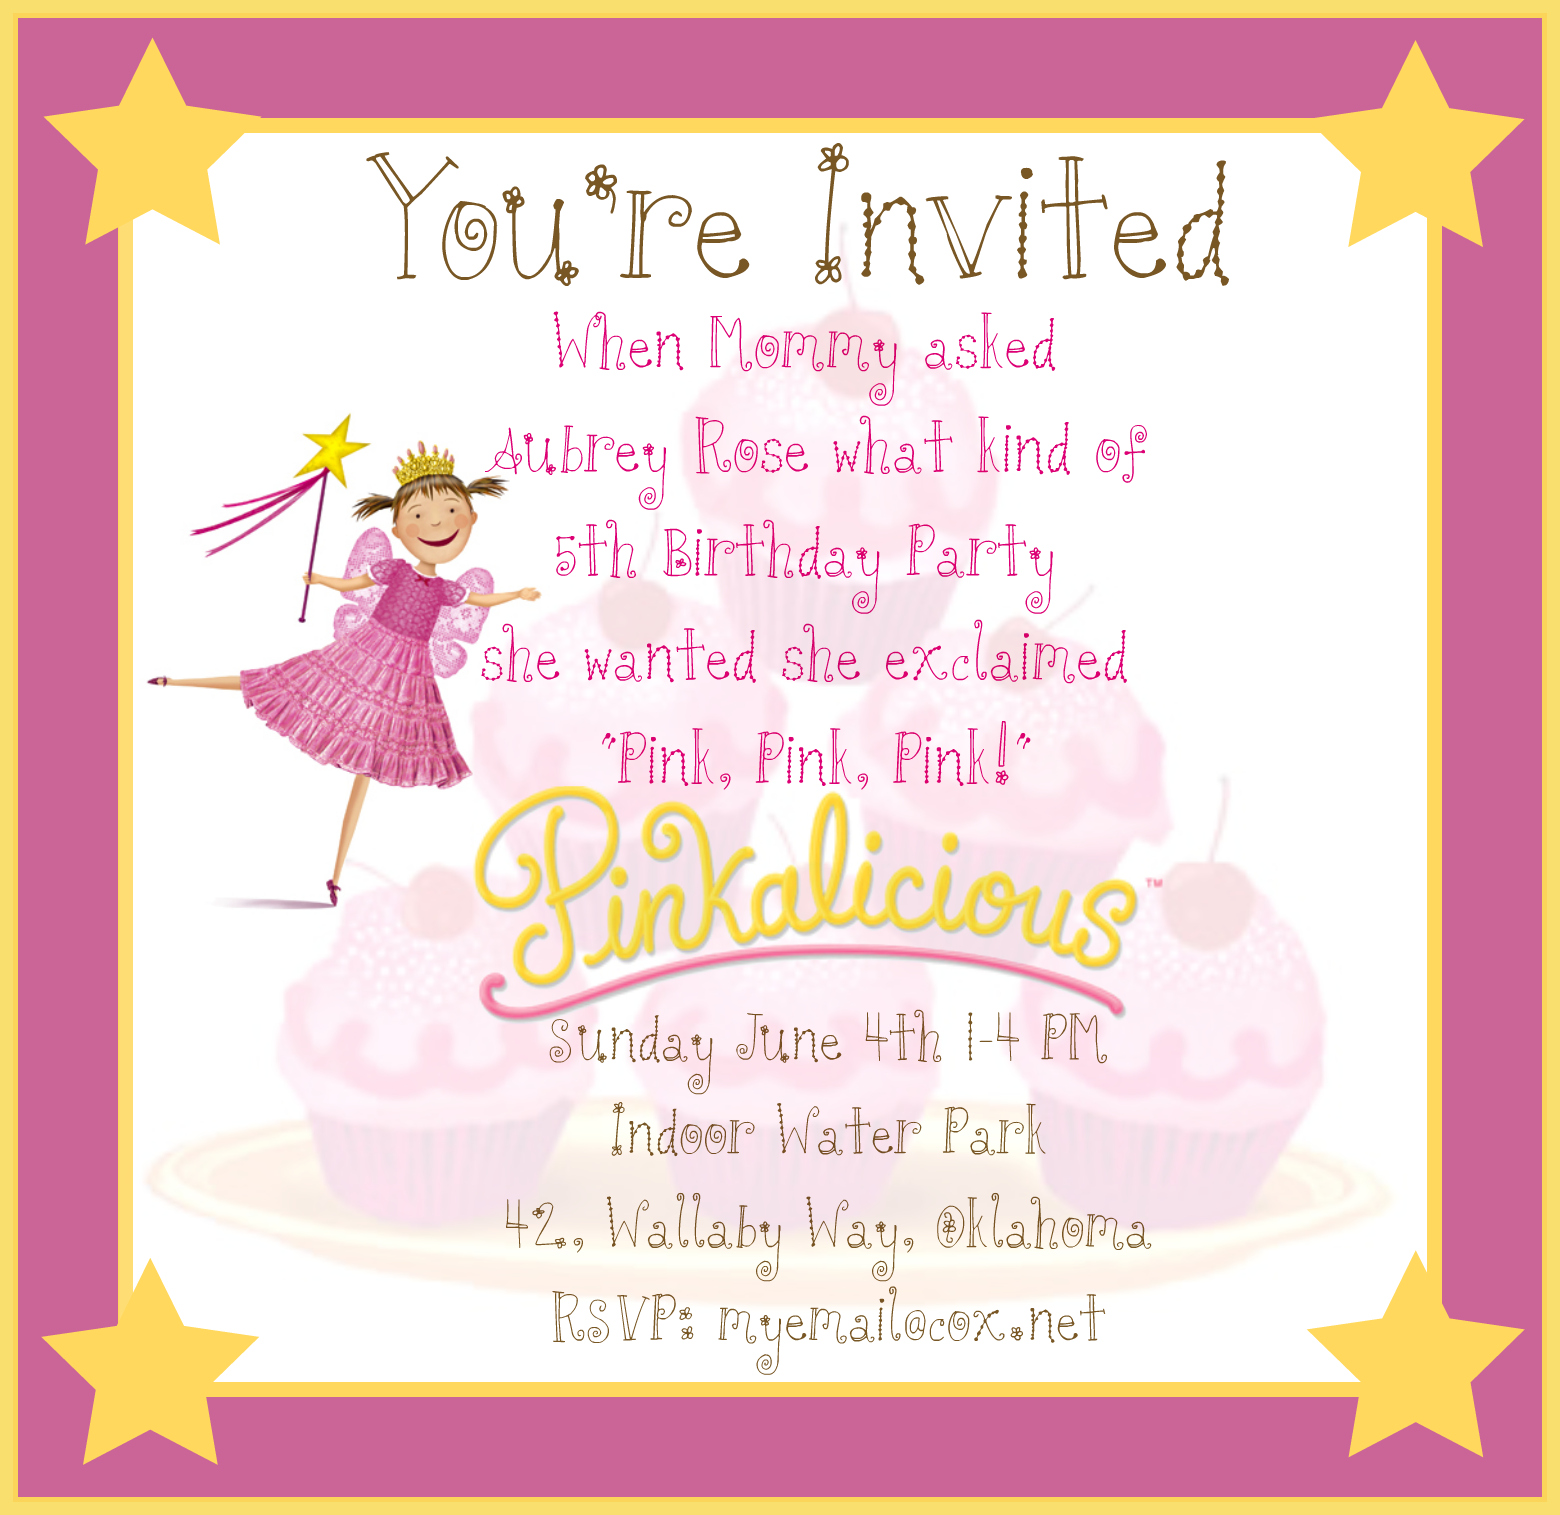 Pyjama Party Invite with nice invitations layout